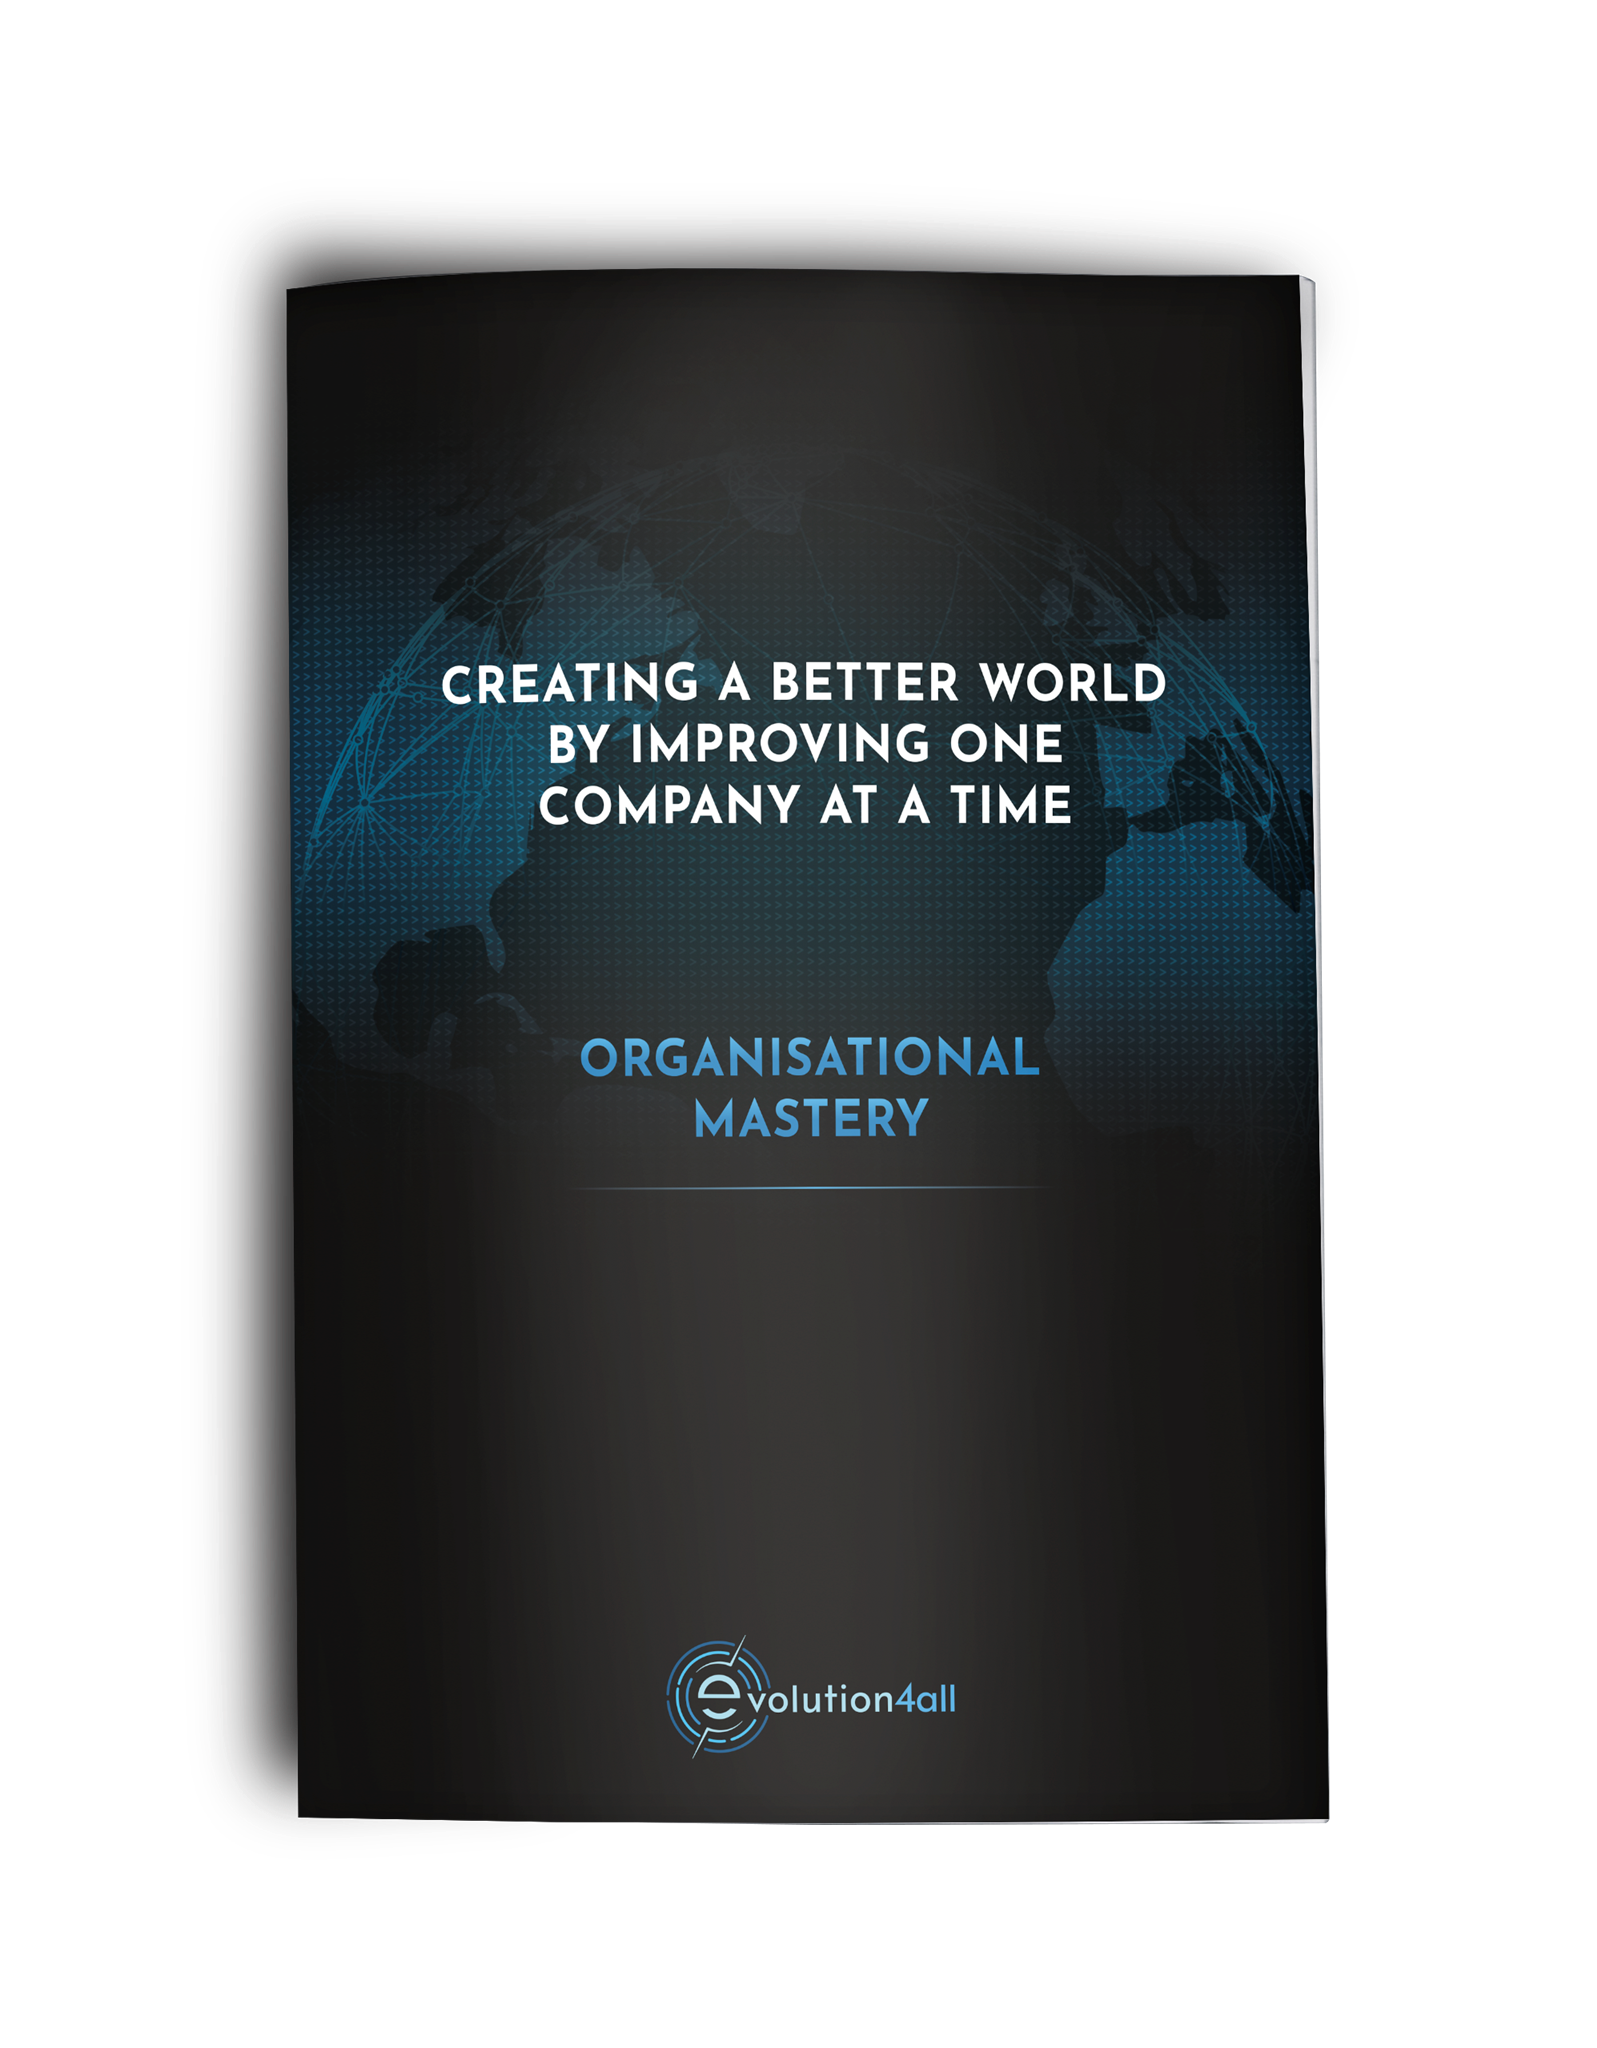 ORGANISATIONAL MASTERY CORE PRODUCT